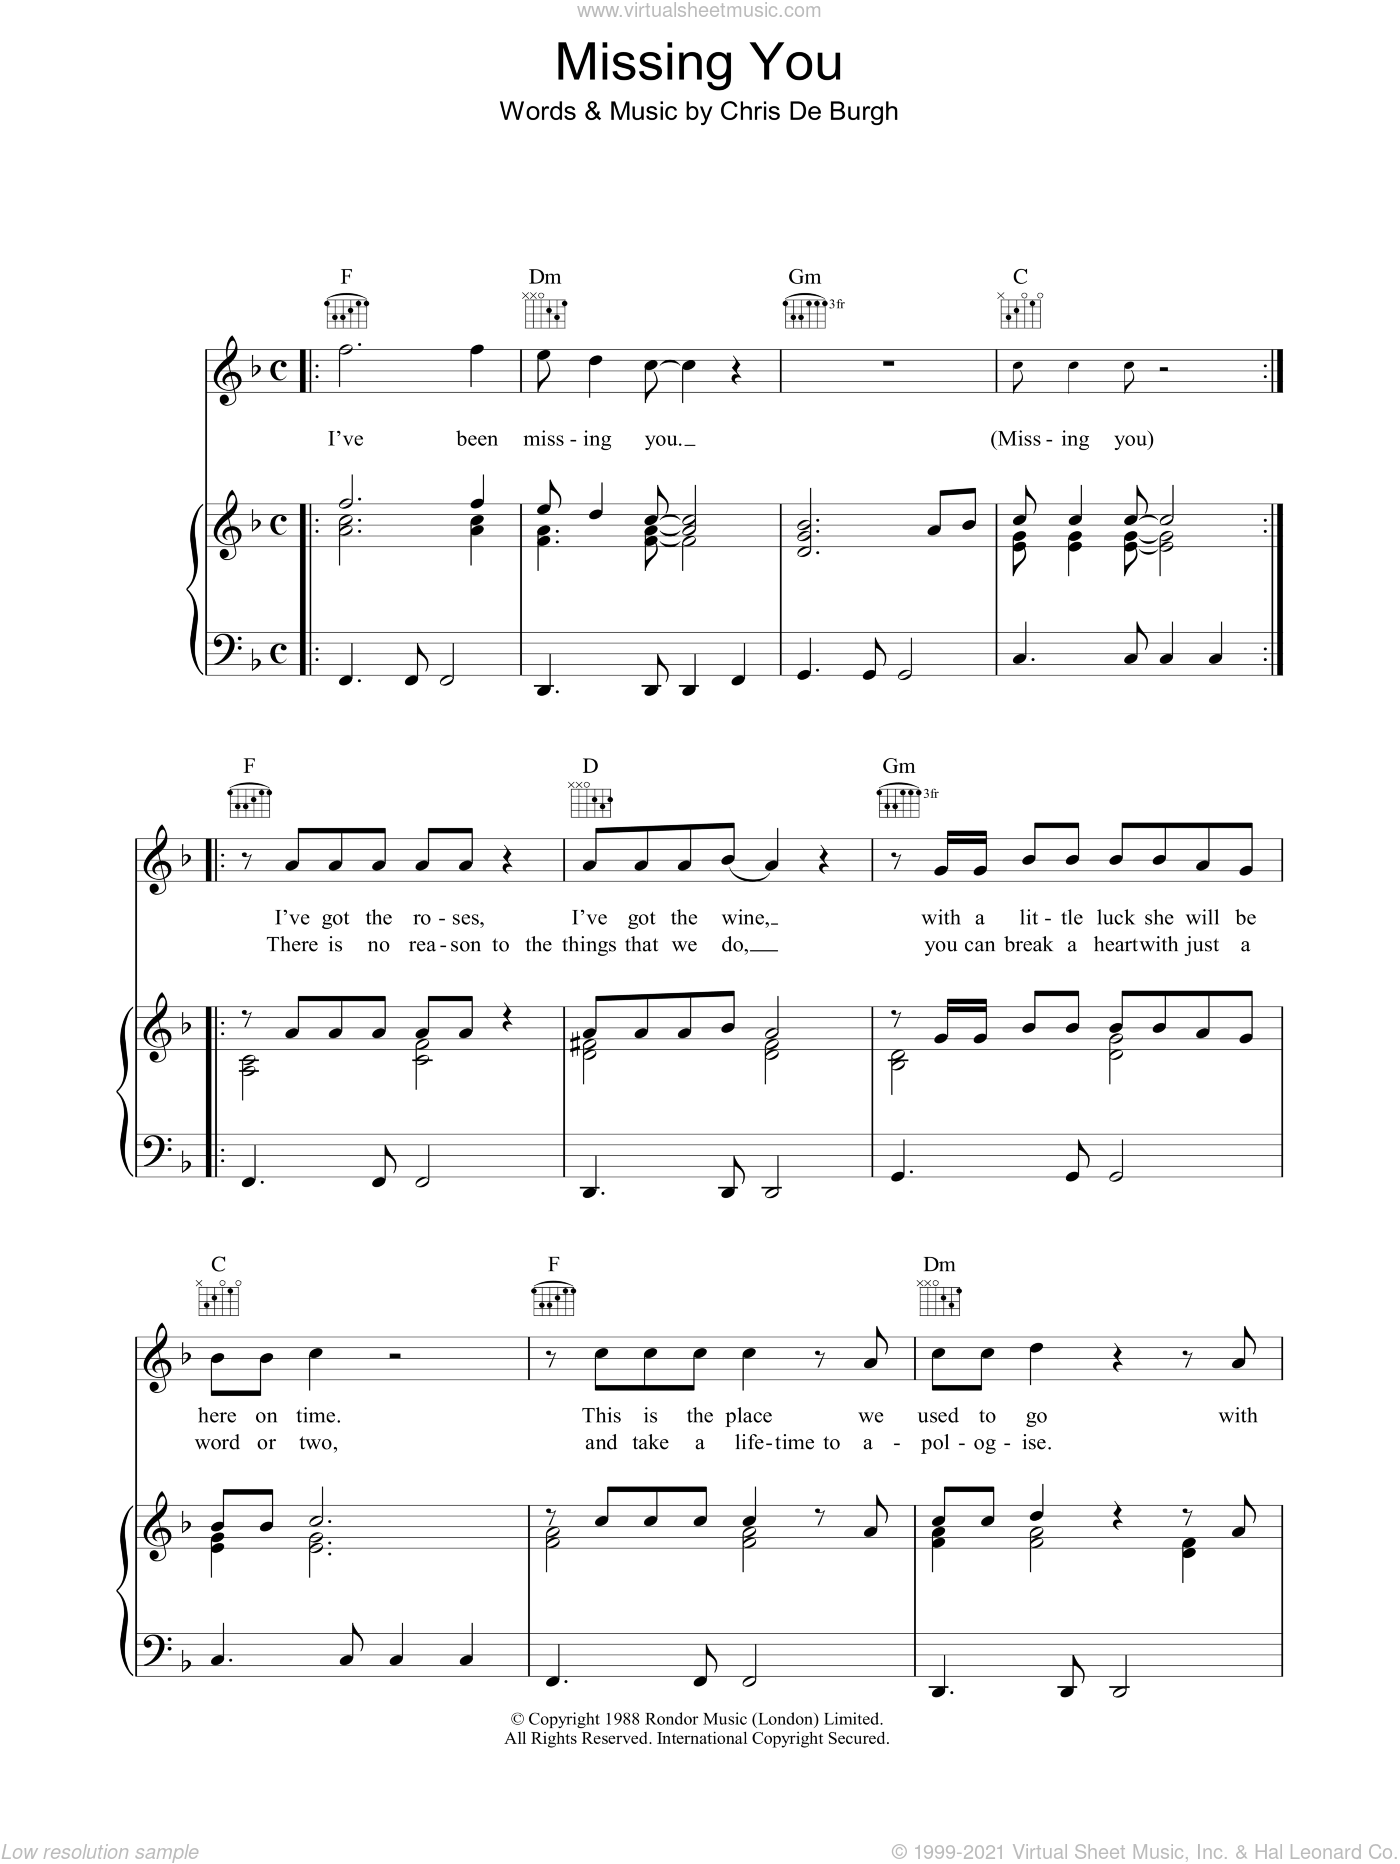 Missing You sheet music for voice, piano or guitar by Chris de Burgh, intermediate. Score Image Preview.